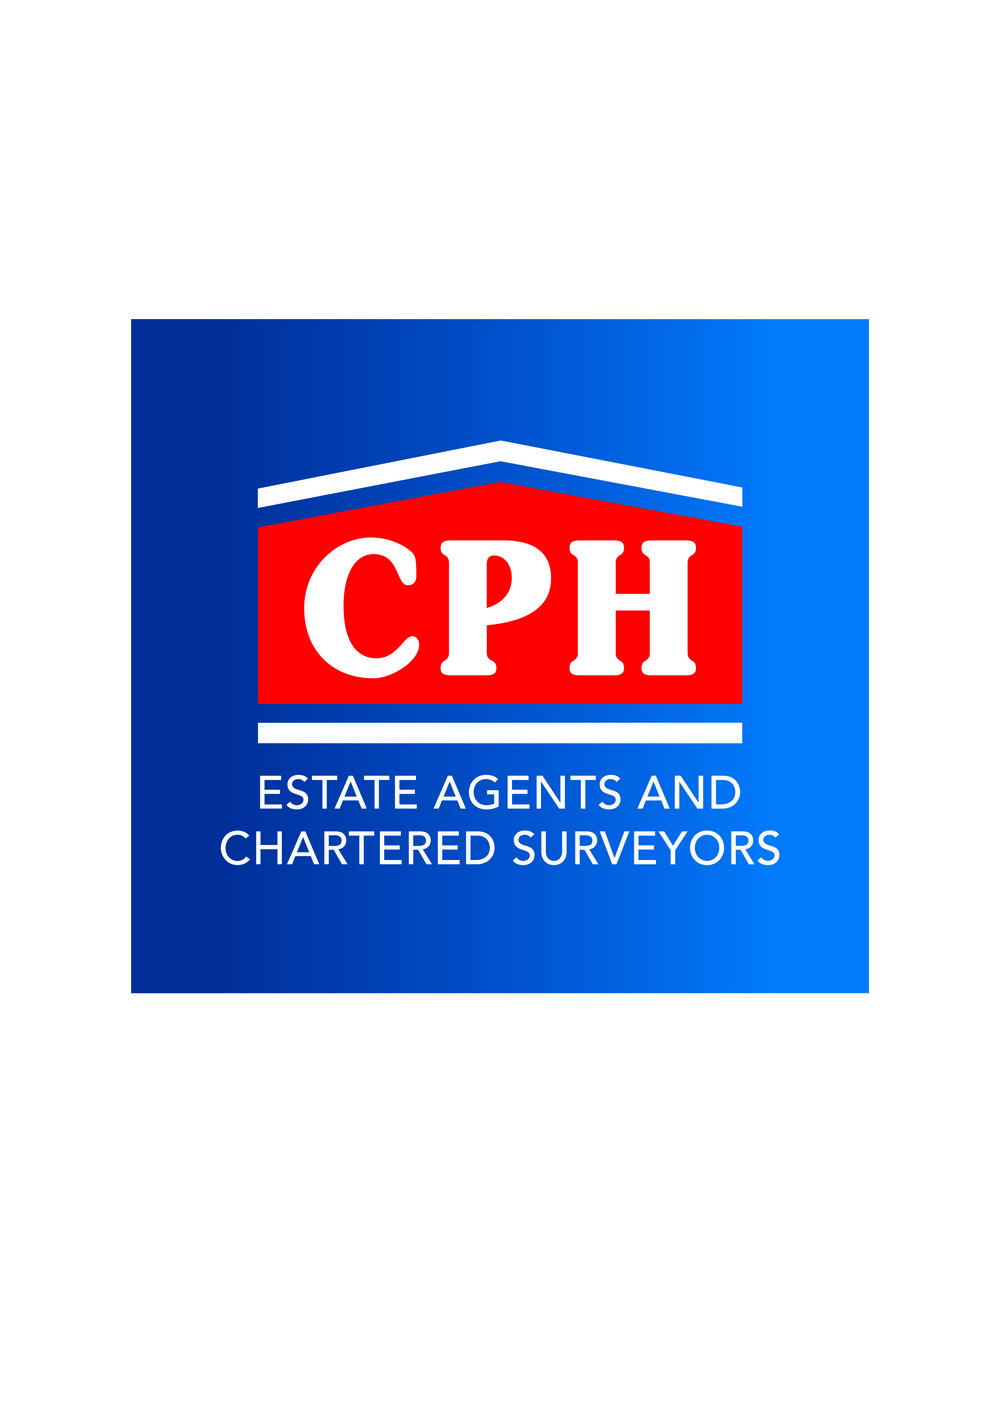 Estate agents CPH join in too - Leading Scarborough estate agents CPH have joined the parade of sponsors of the great Star Women in Business Awards 2019 hashtag#scarboroughrollcall Joe Walker and Phil Fletcher, directors of Scarborough estate agents CPH, said: